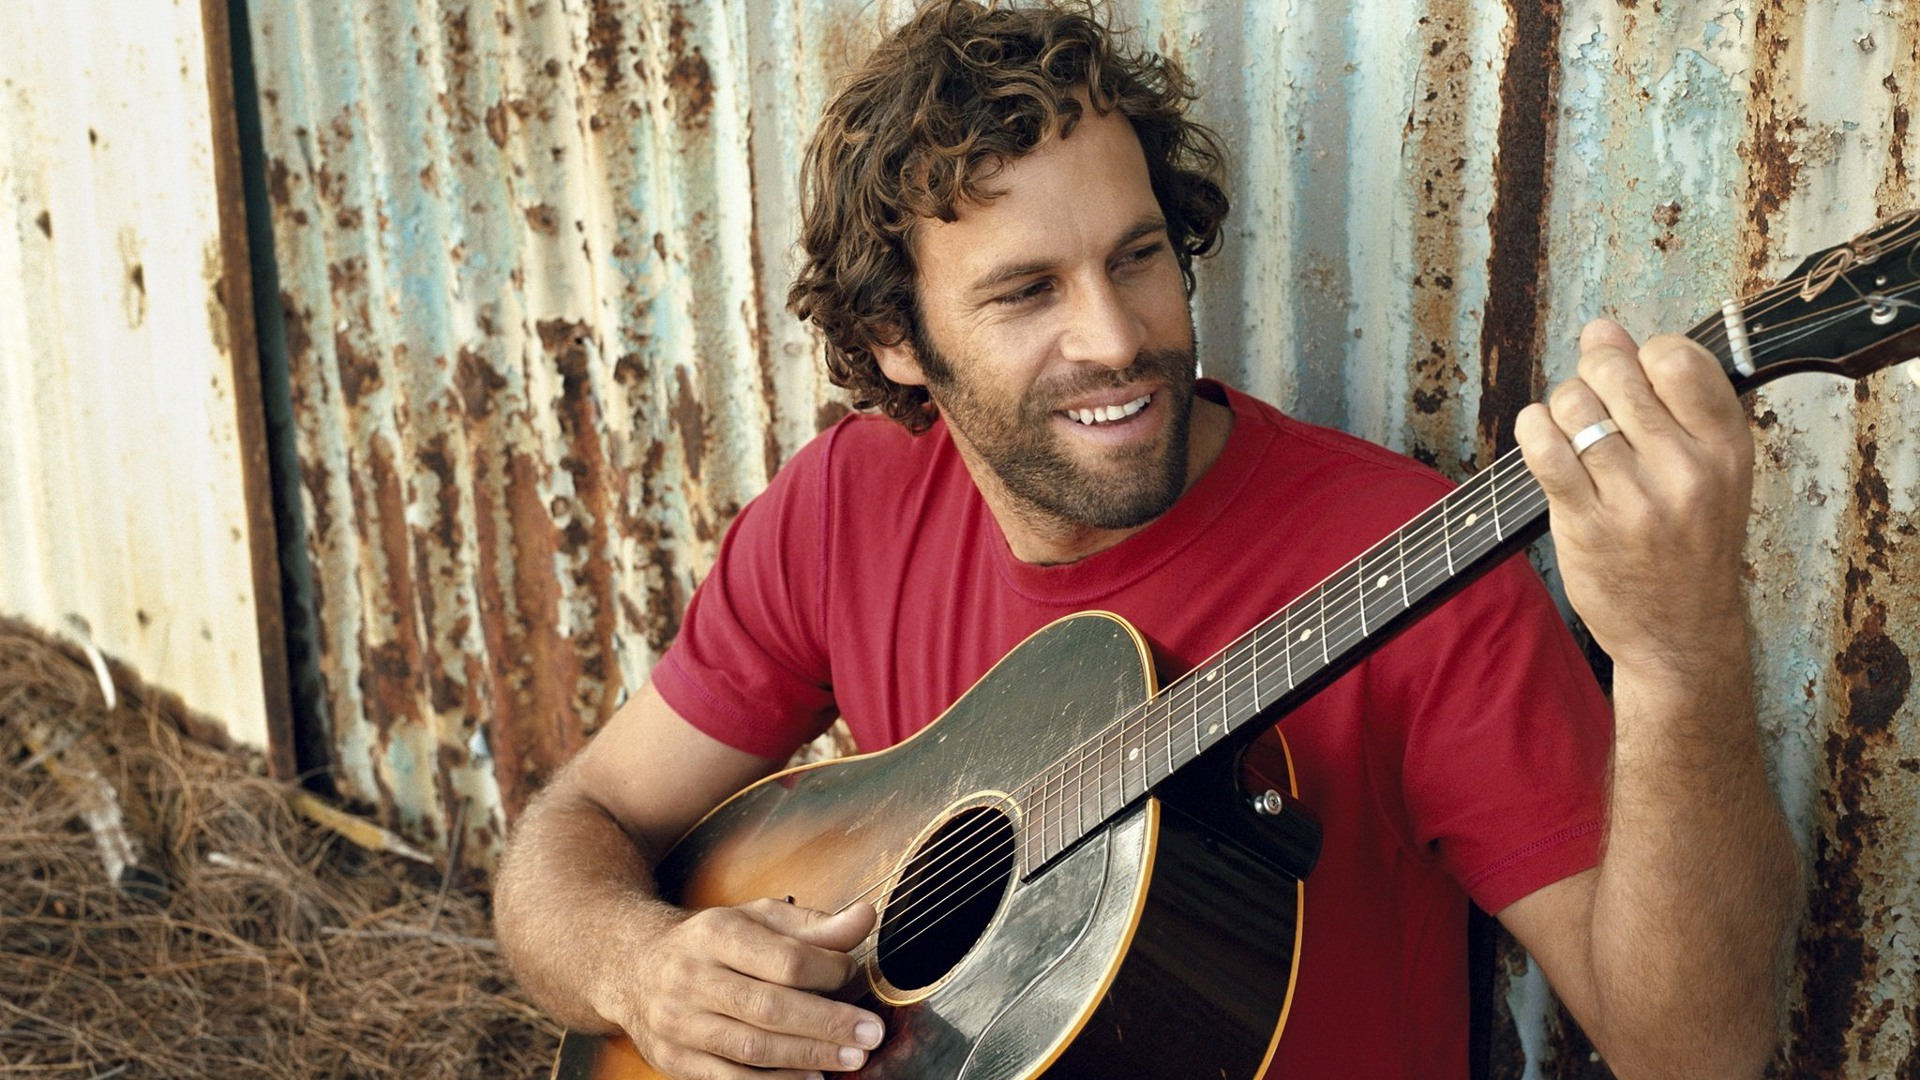 Jack johnson upside down free mp3 download.